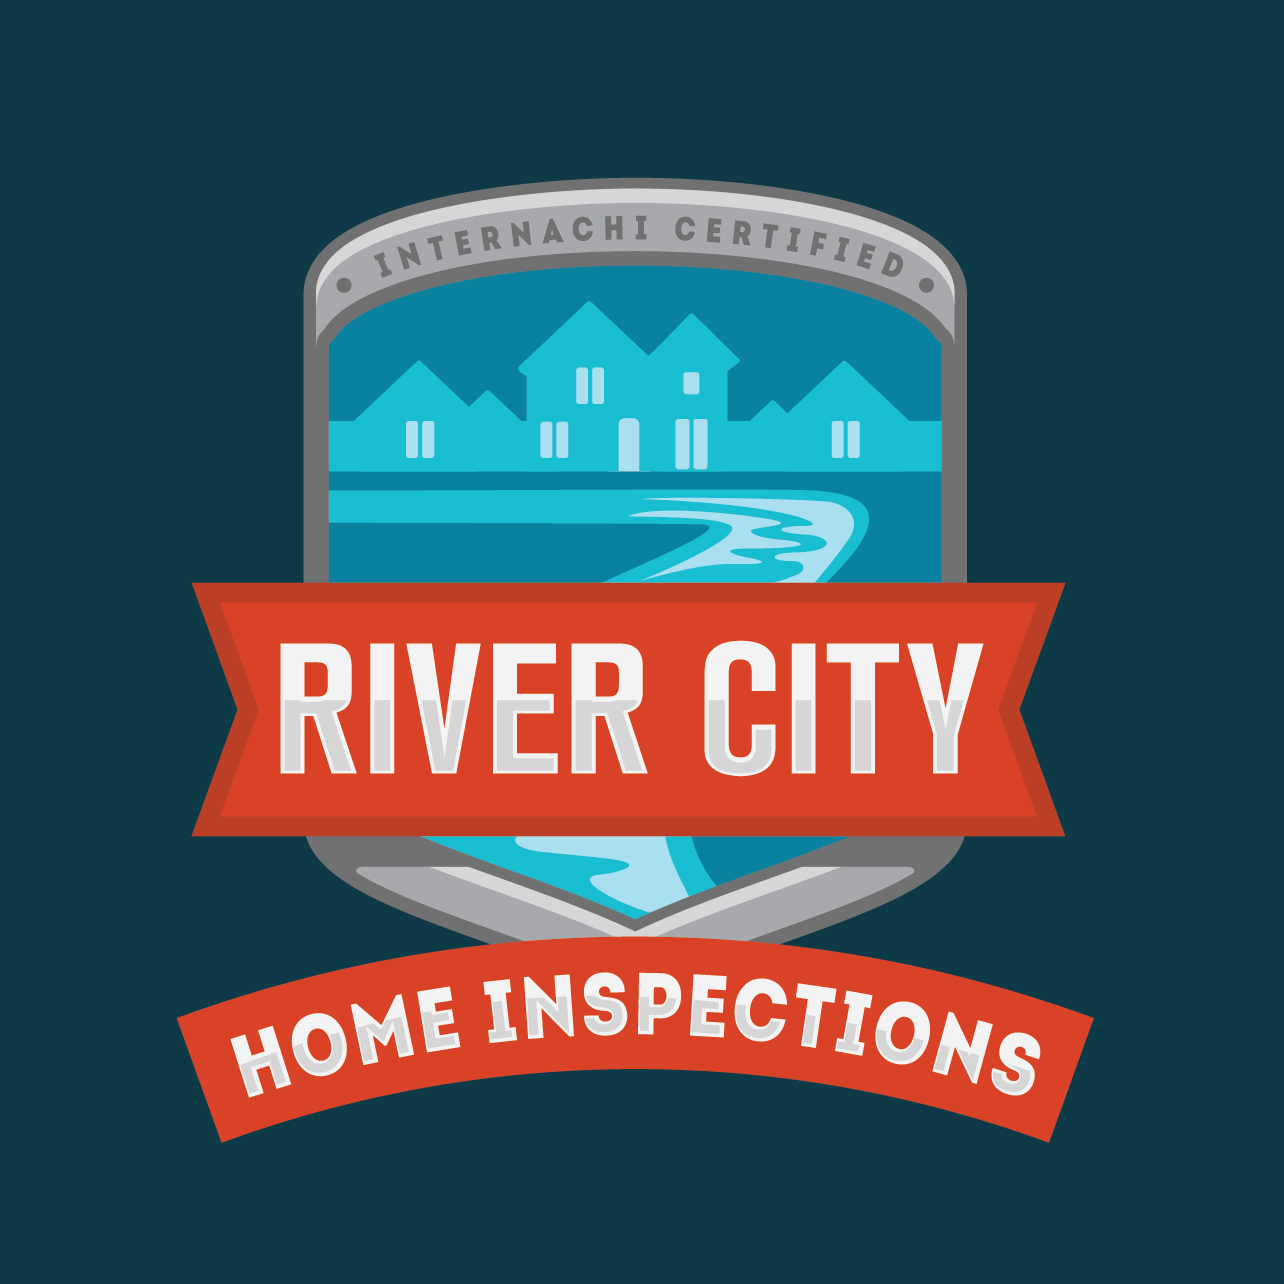 River City Home Inspections